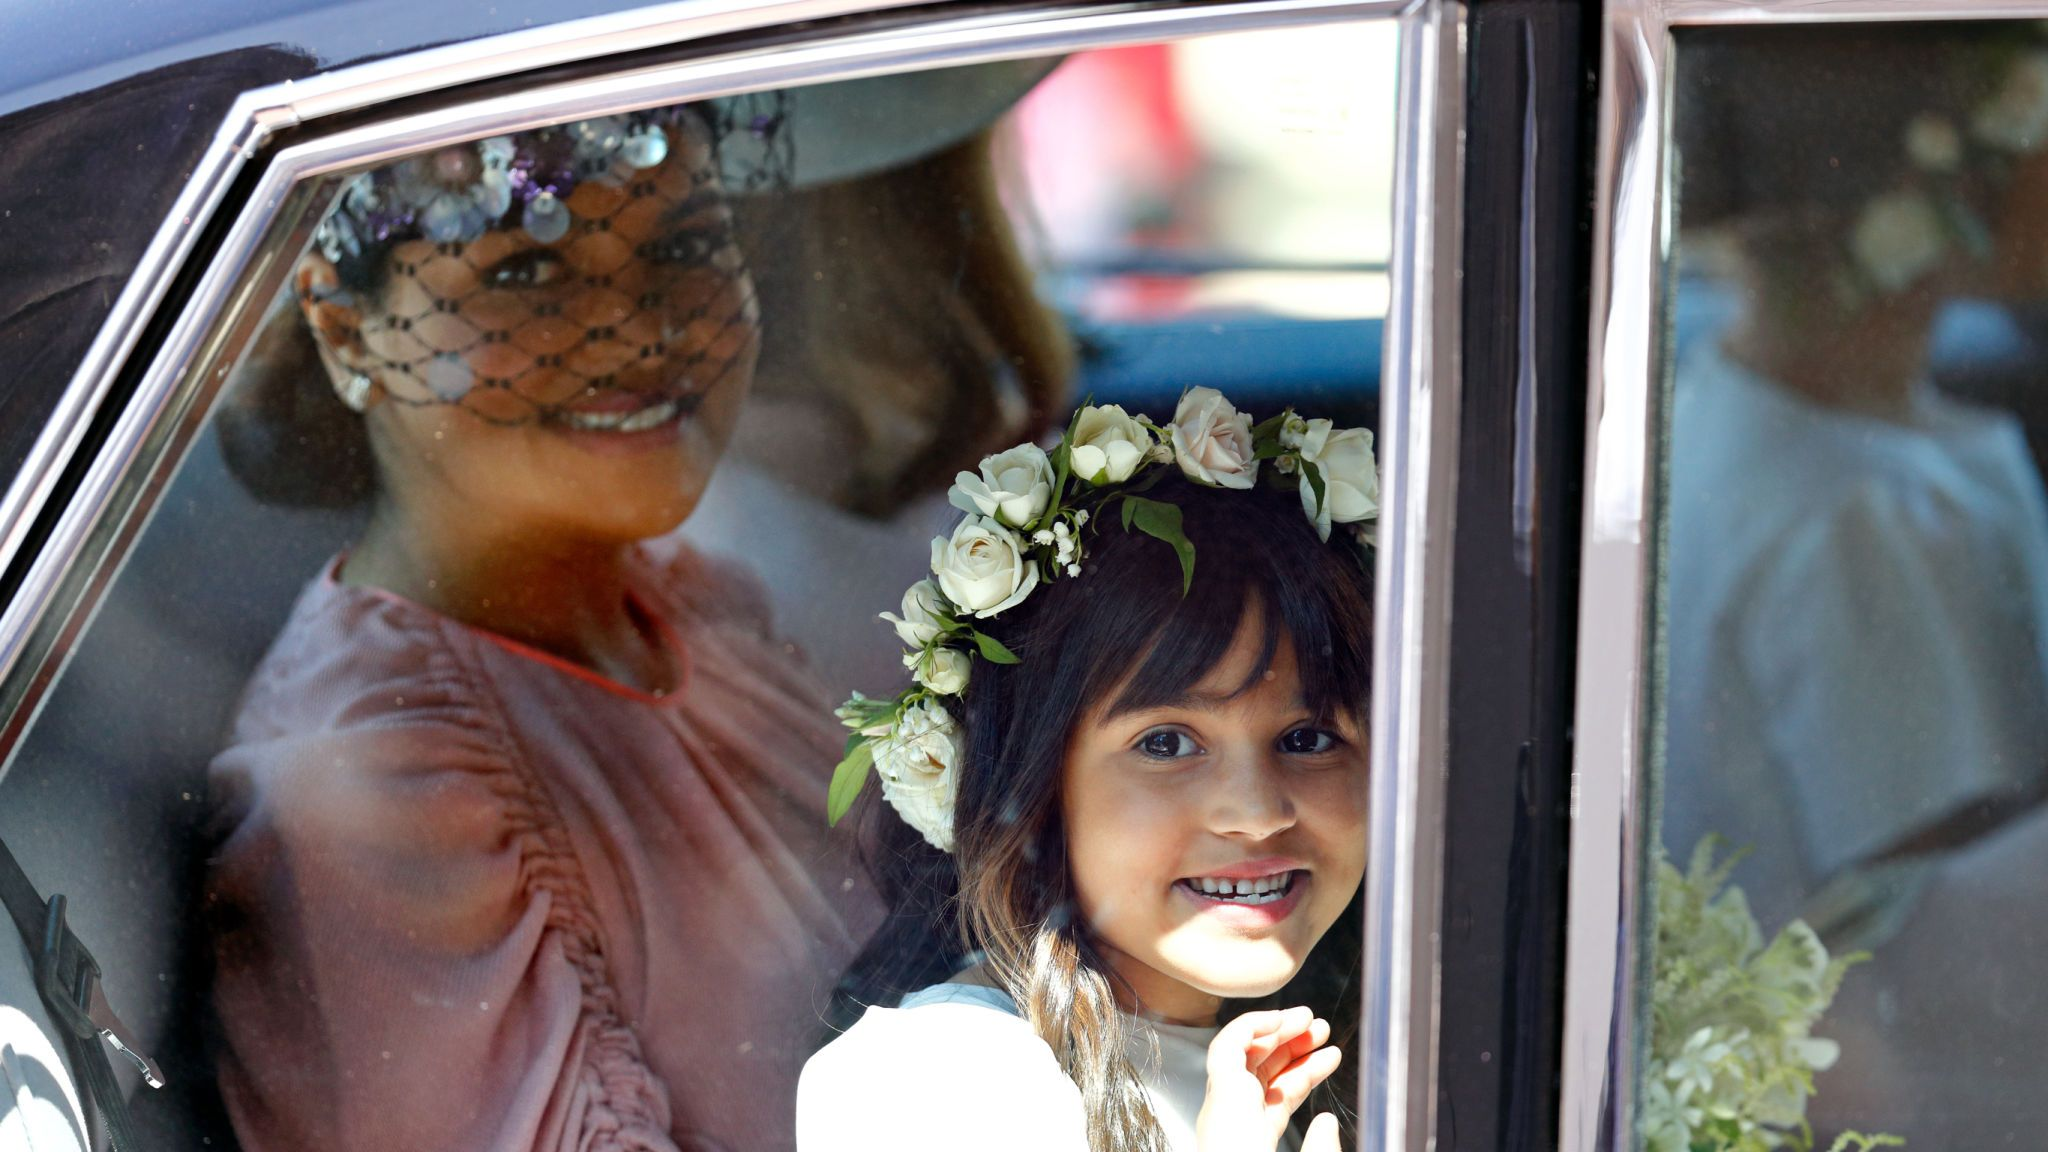 Benita Litt and Remi Litt attend the wedding of Prince Harry to Ms Meghan Markle at St George's Chapel, Windsor Castle on May 19, 2018 in Windsor, England. Prince Henry Charles Albert David of Wales marries Ms. Meghan Markle in a service at St George's Chapel inside the grounds of Windsor Castle. Among the guests were 2200 members of the public, the royal family and Ms. Markle's Mother Doria Ragland